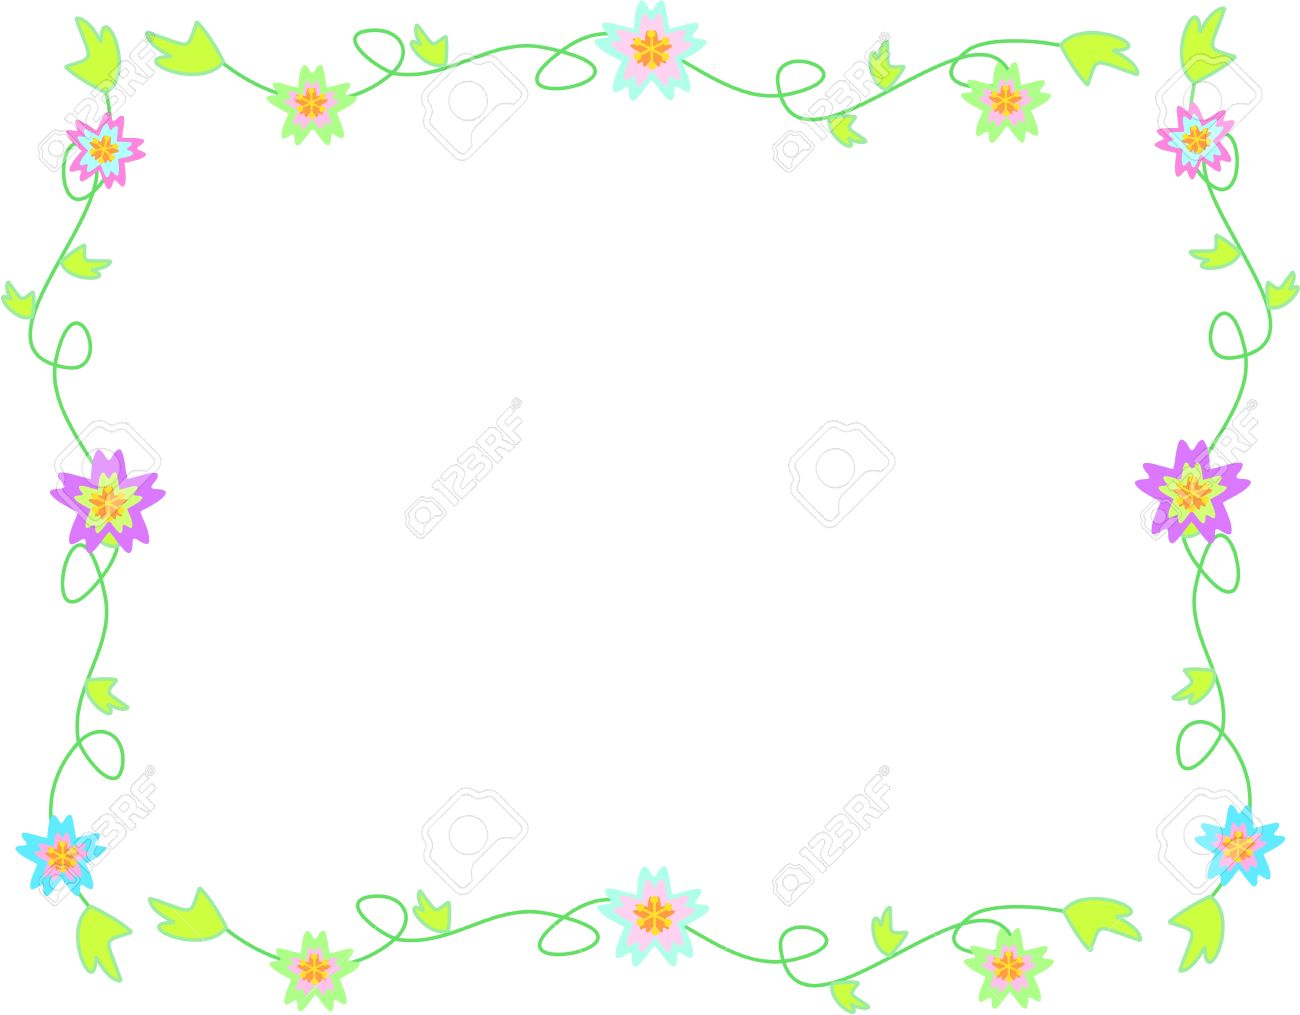 Delicate Frame of Flowers, Vines, and Leaves - 5092081